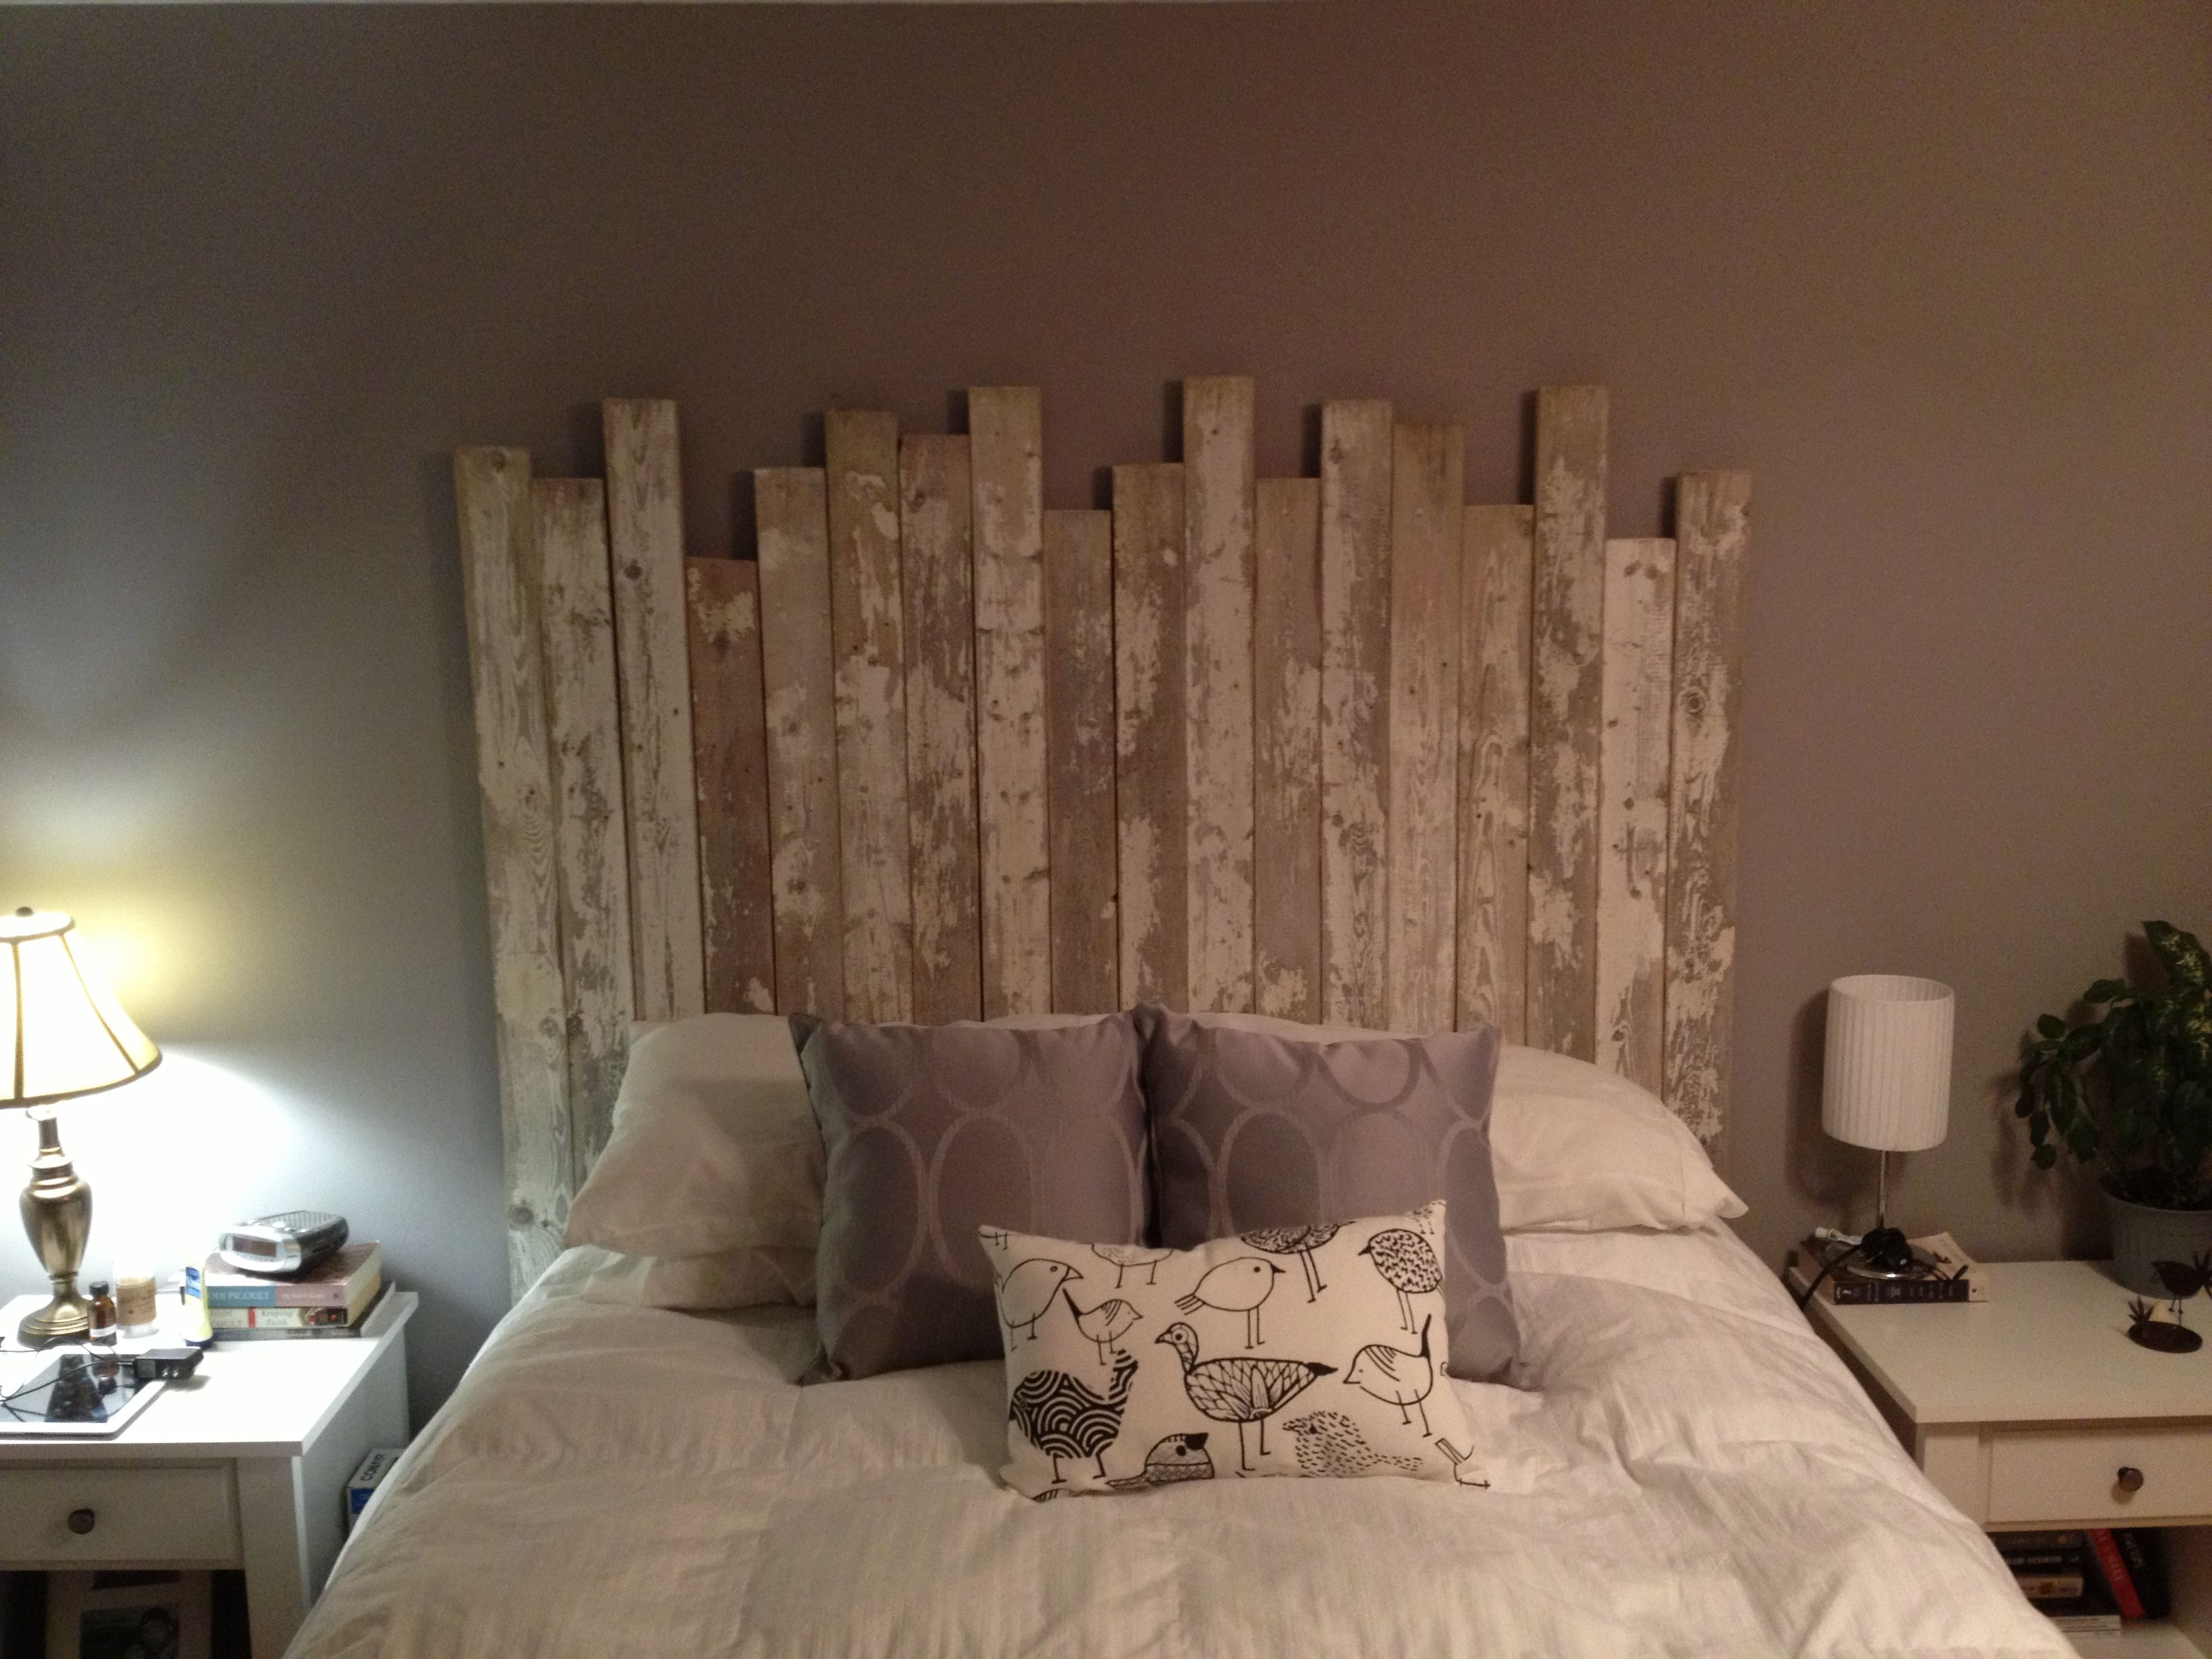 DIY - our homemade headboard.